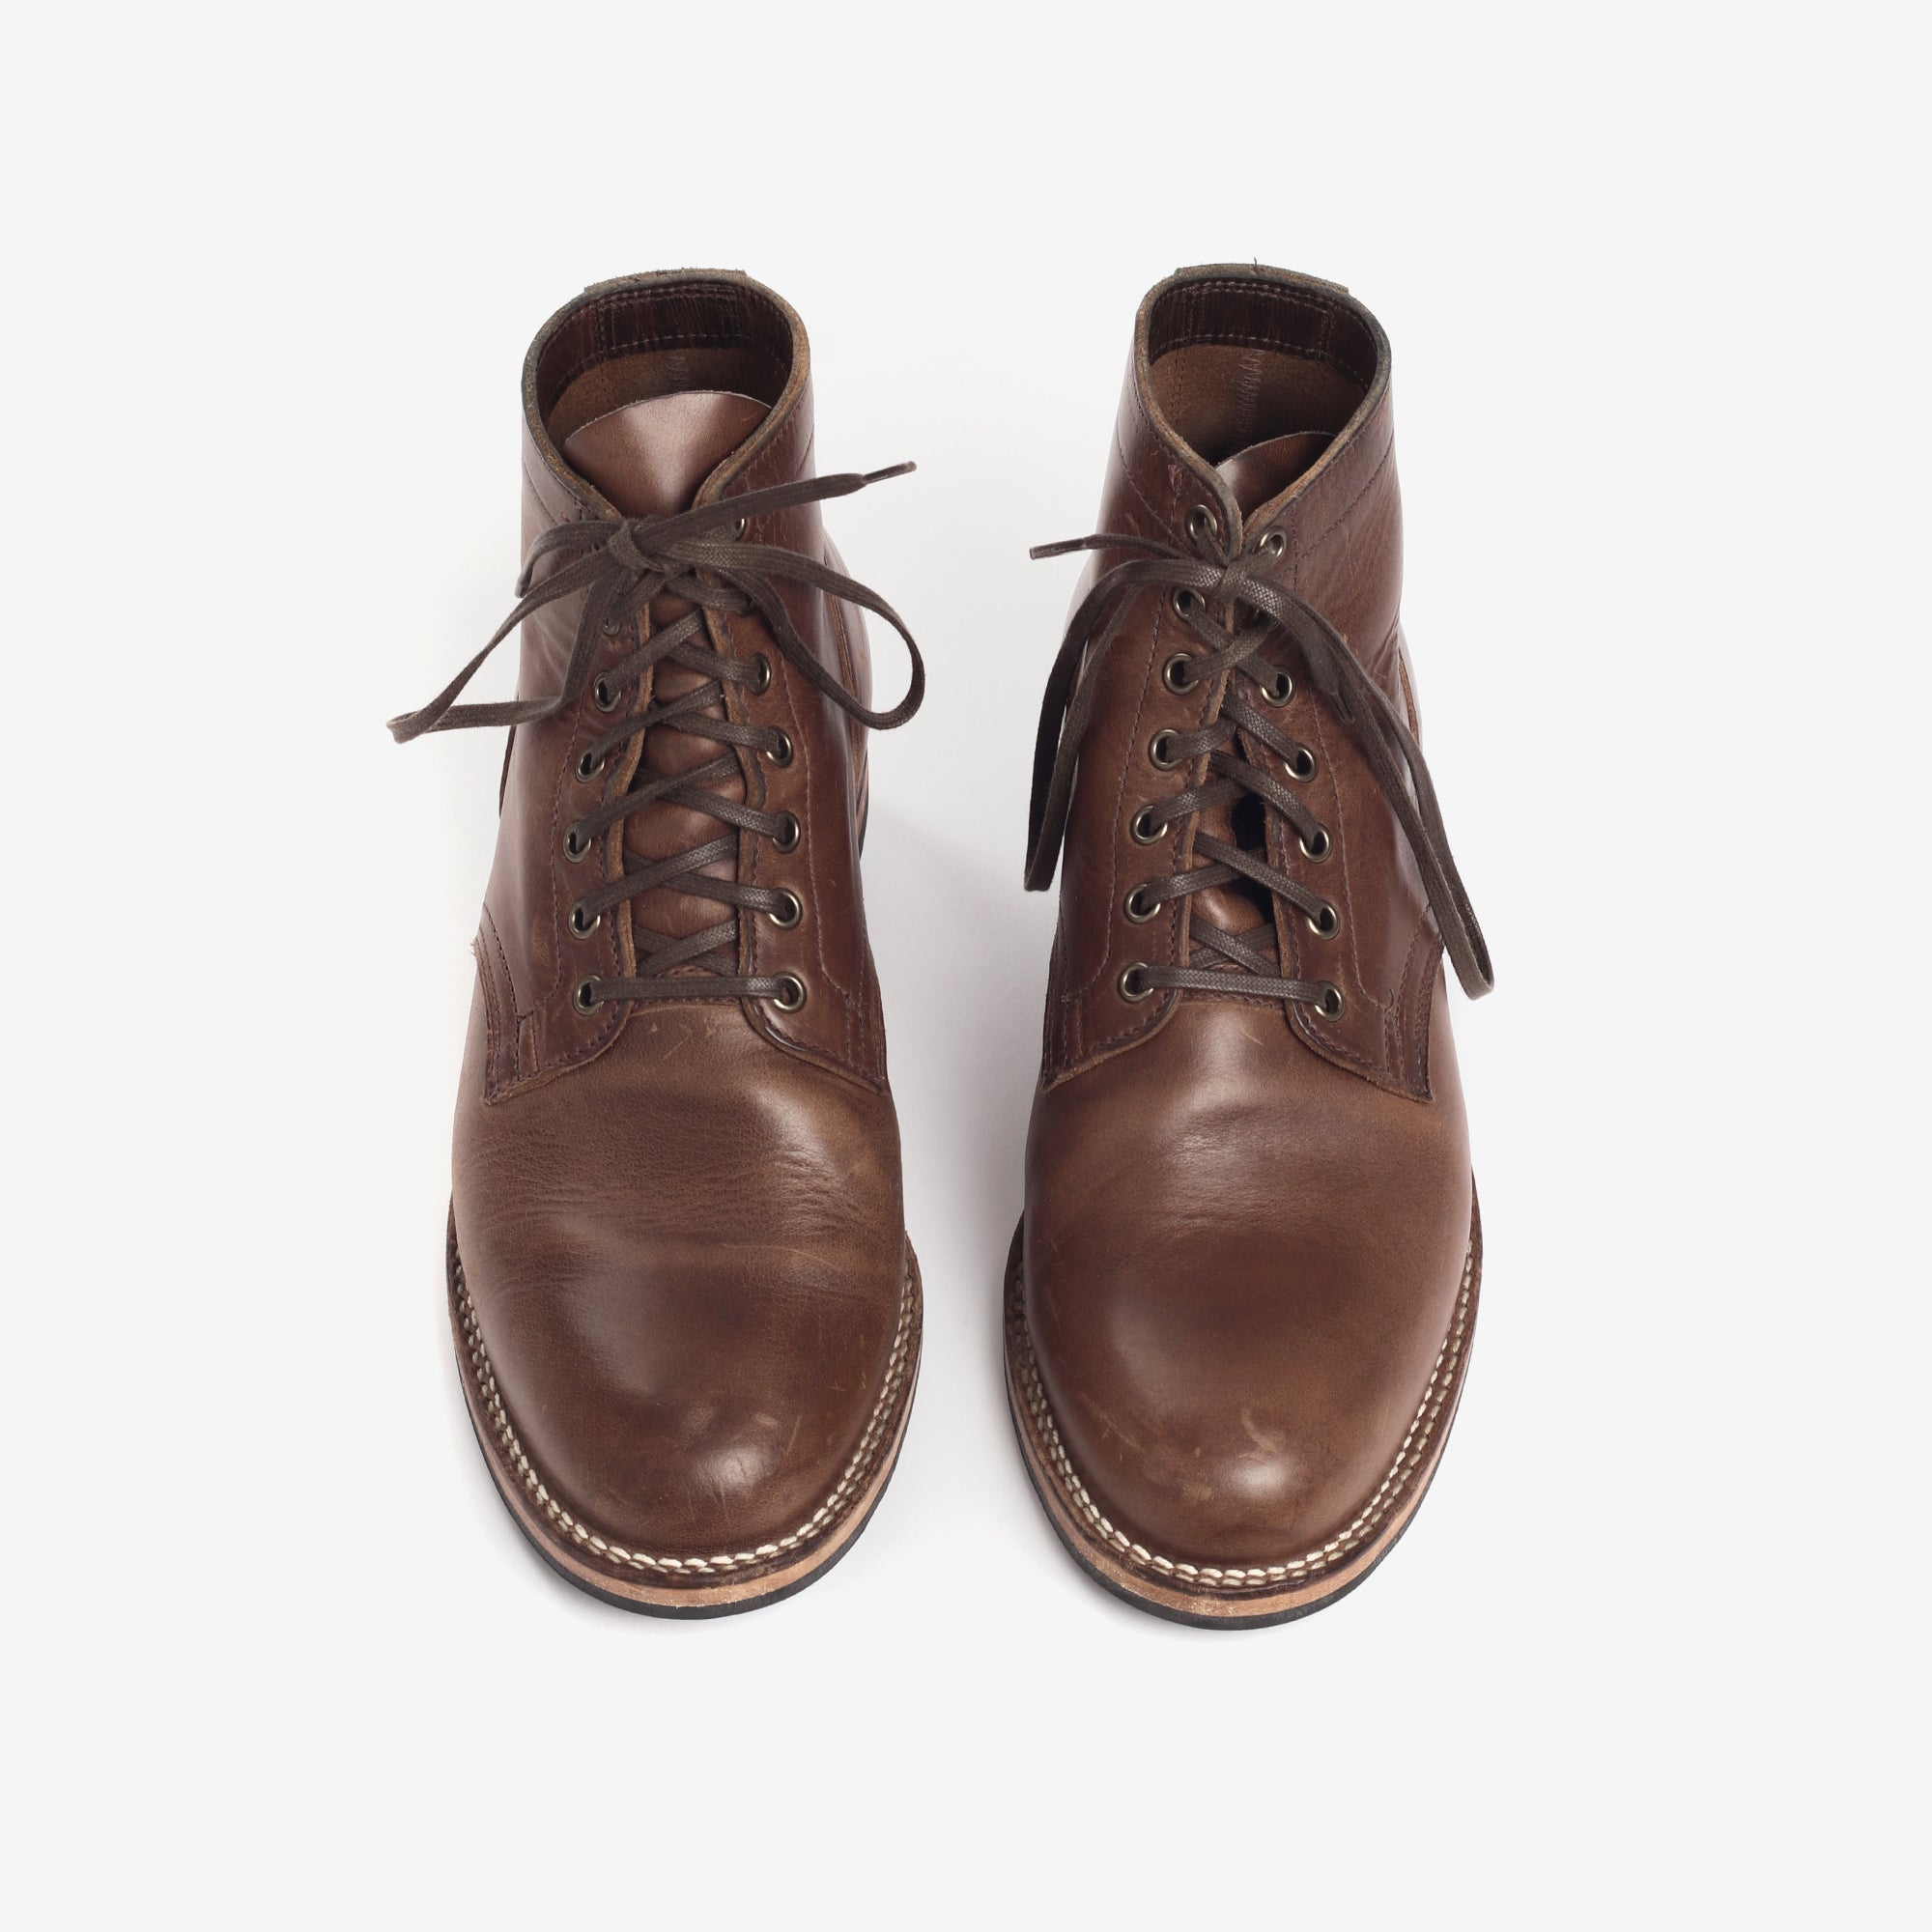 Chromexcel Service Boots